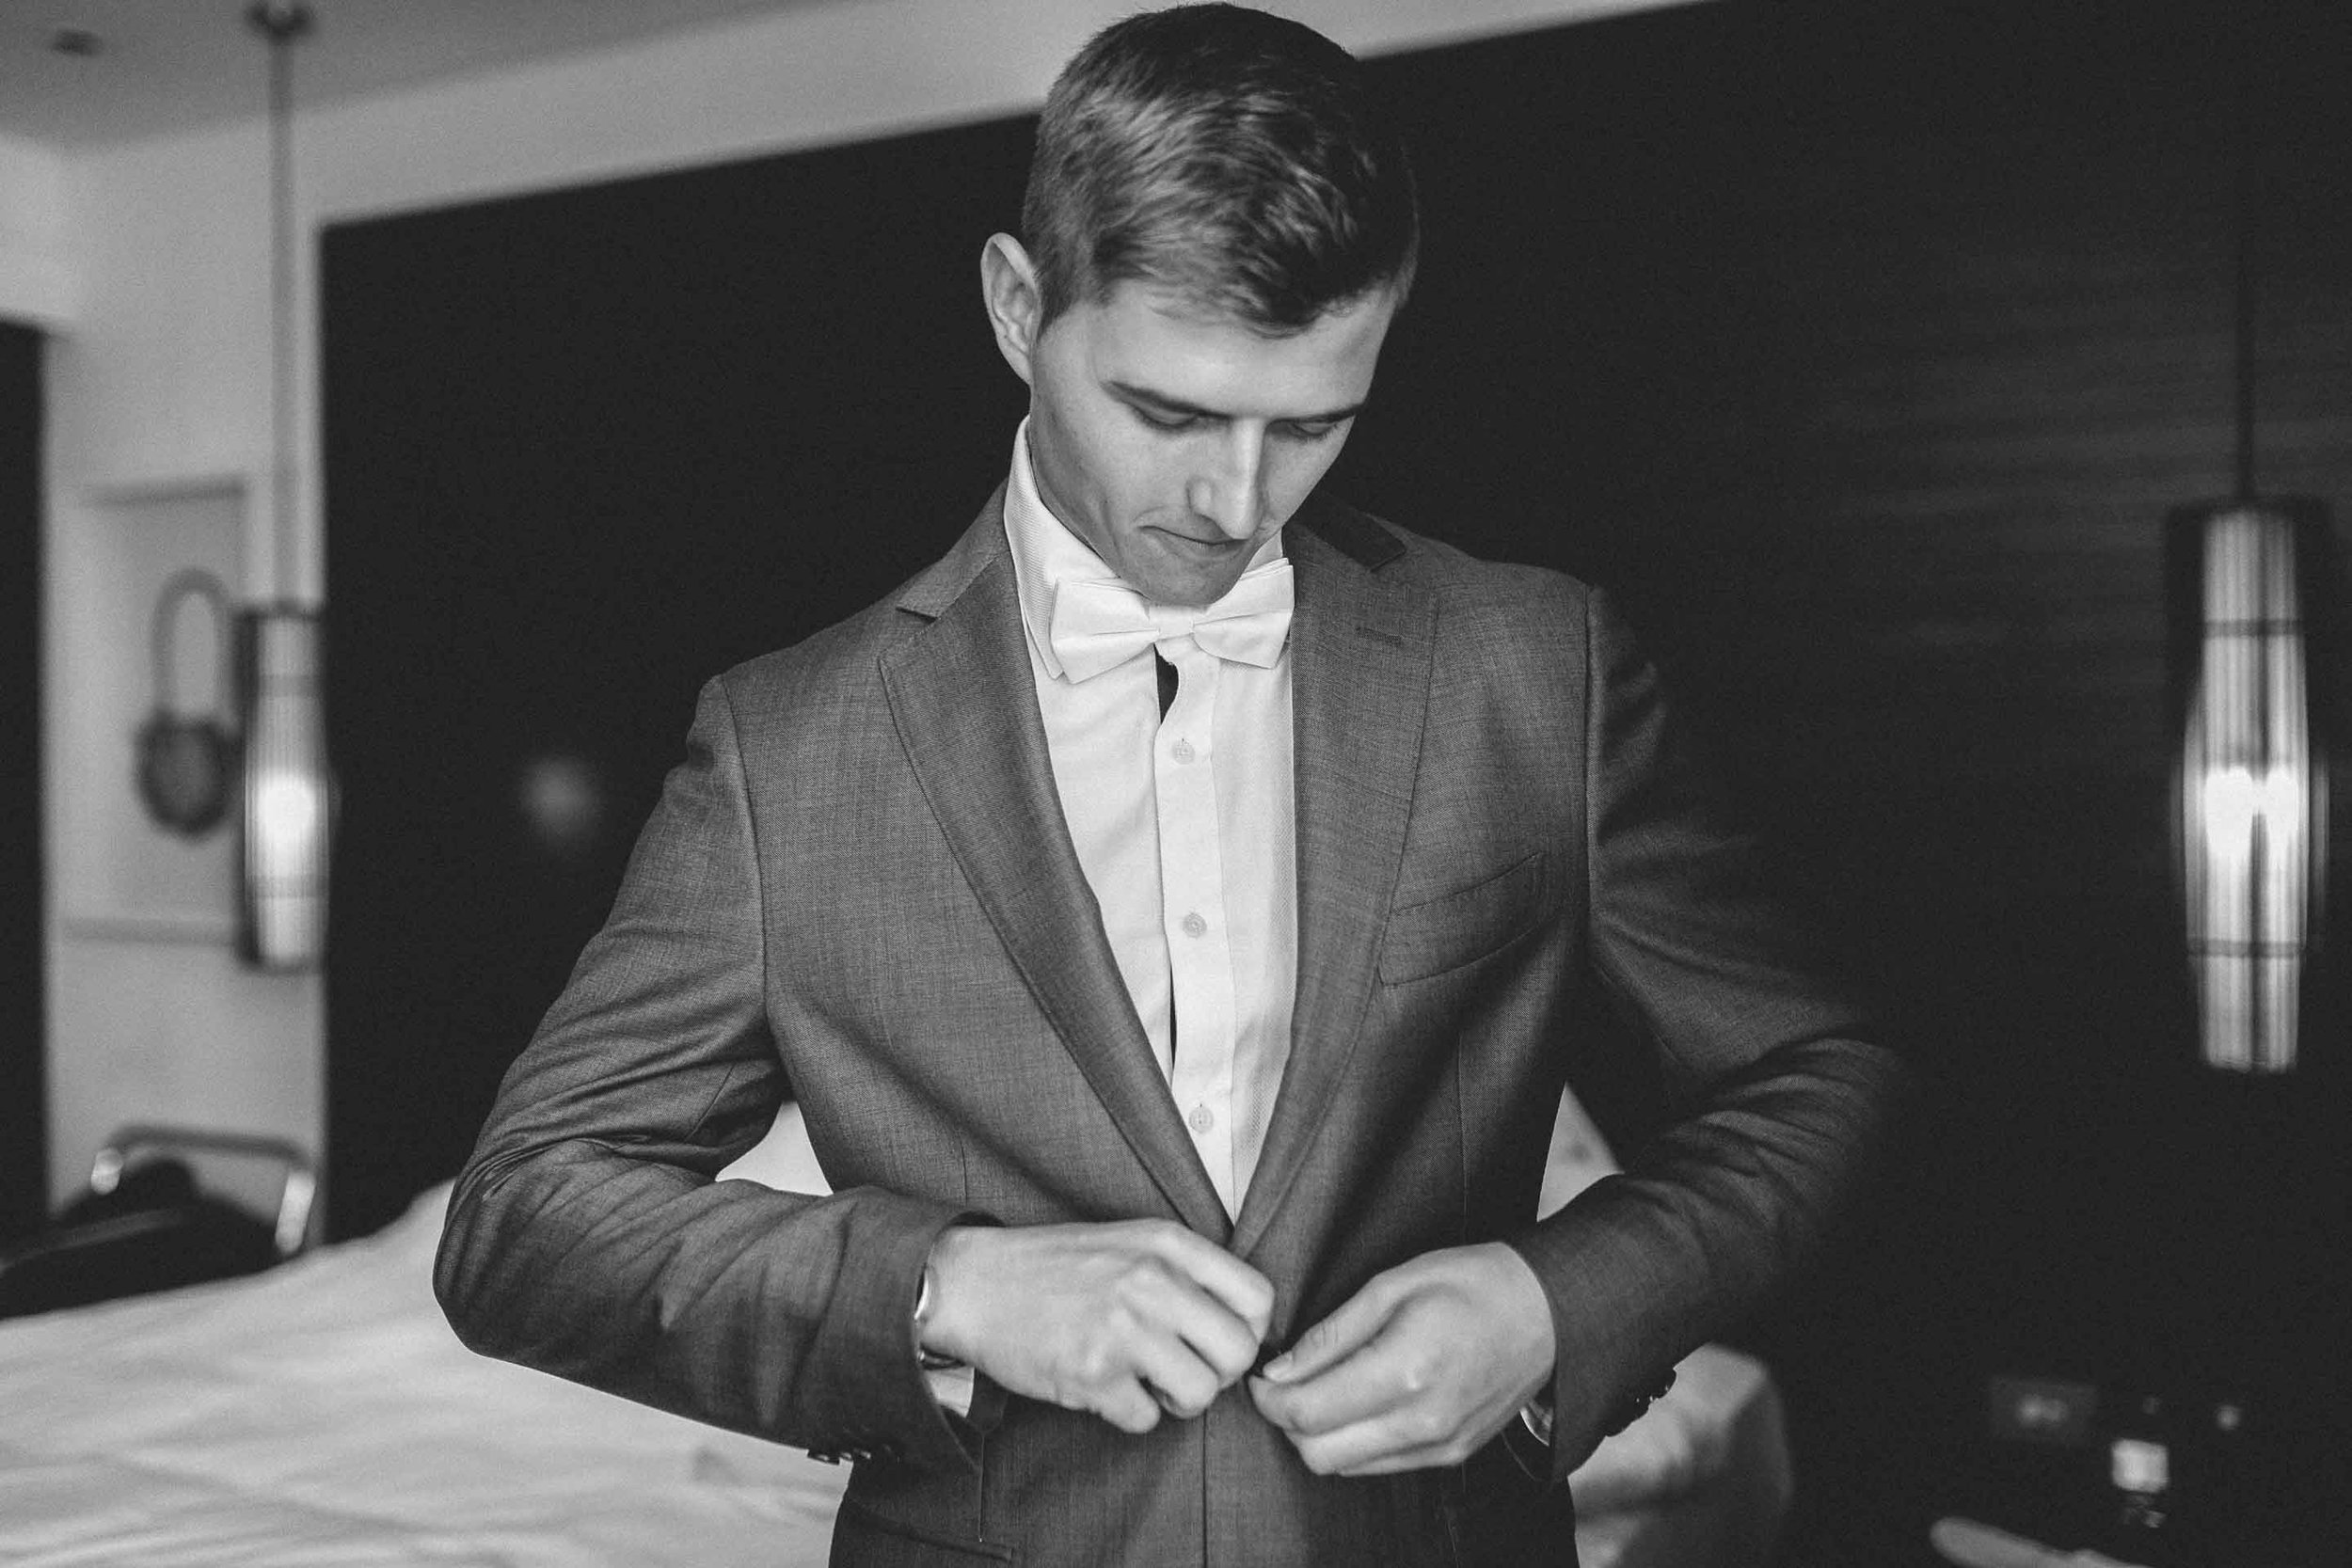 Handsome Groom buttons up his Suit Jacket.